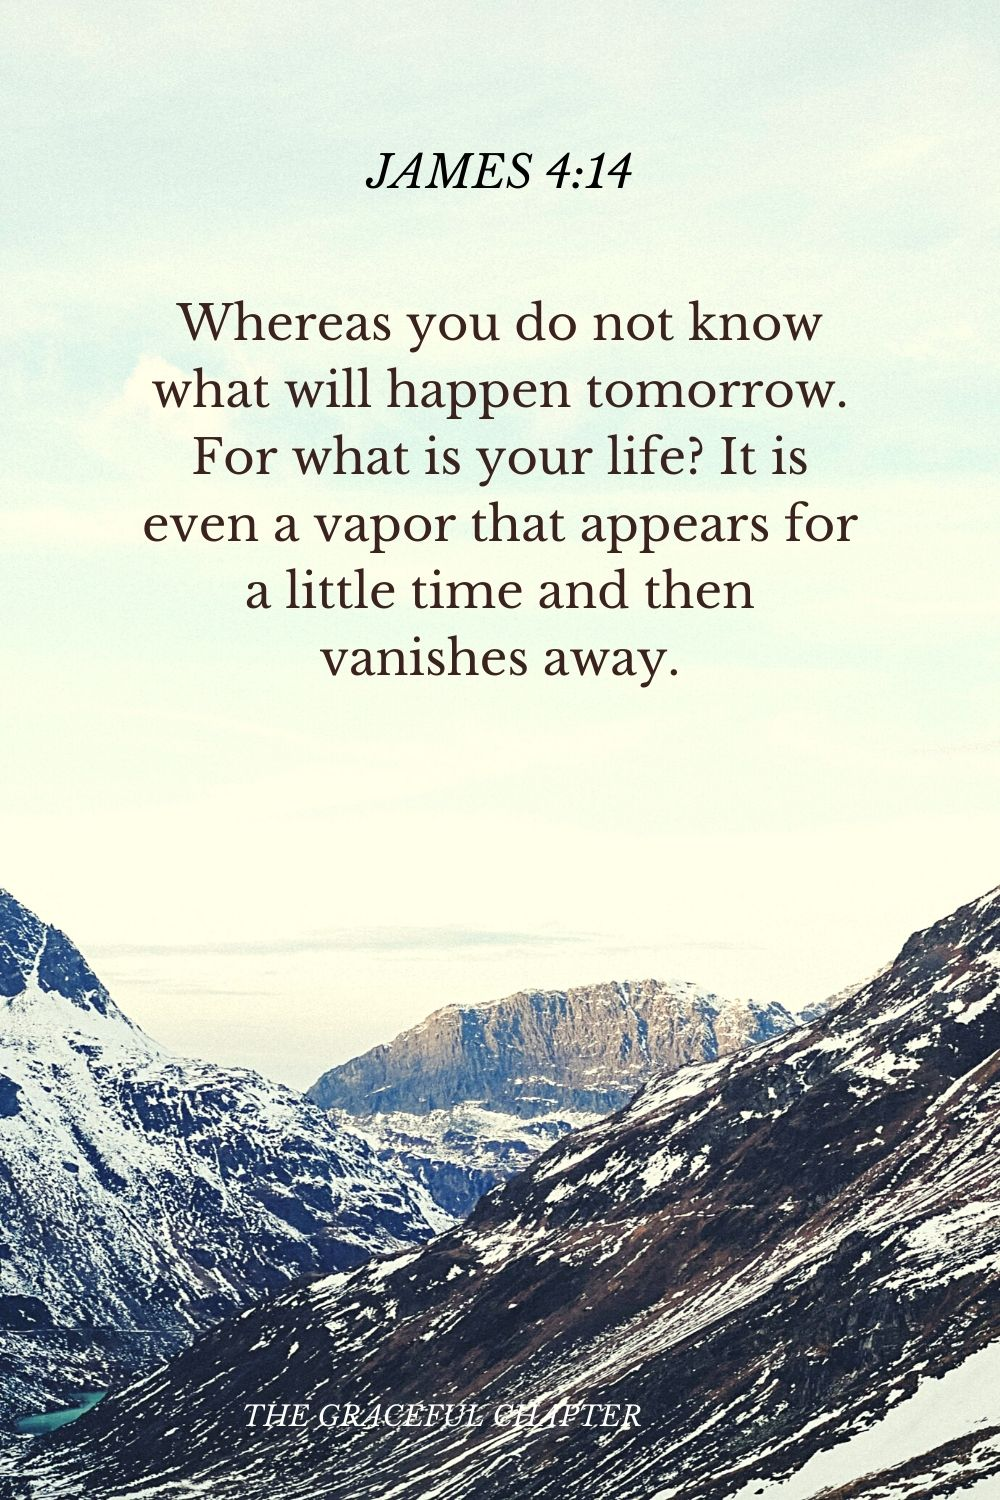 Whereas you do not know what will happen tomorrow. For what is your life? It is even a vapor that appears for a little time and then vanishes away. James 4:14